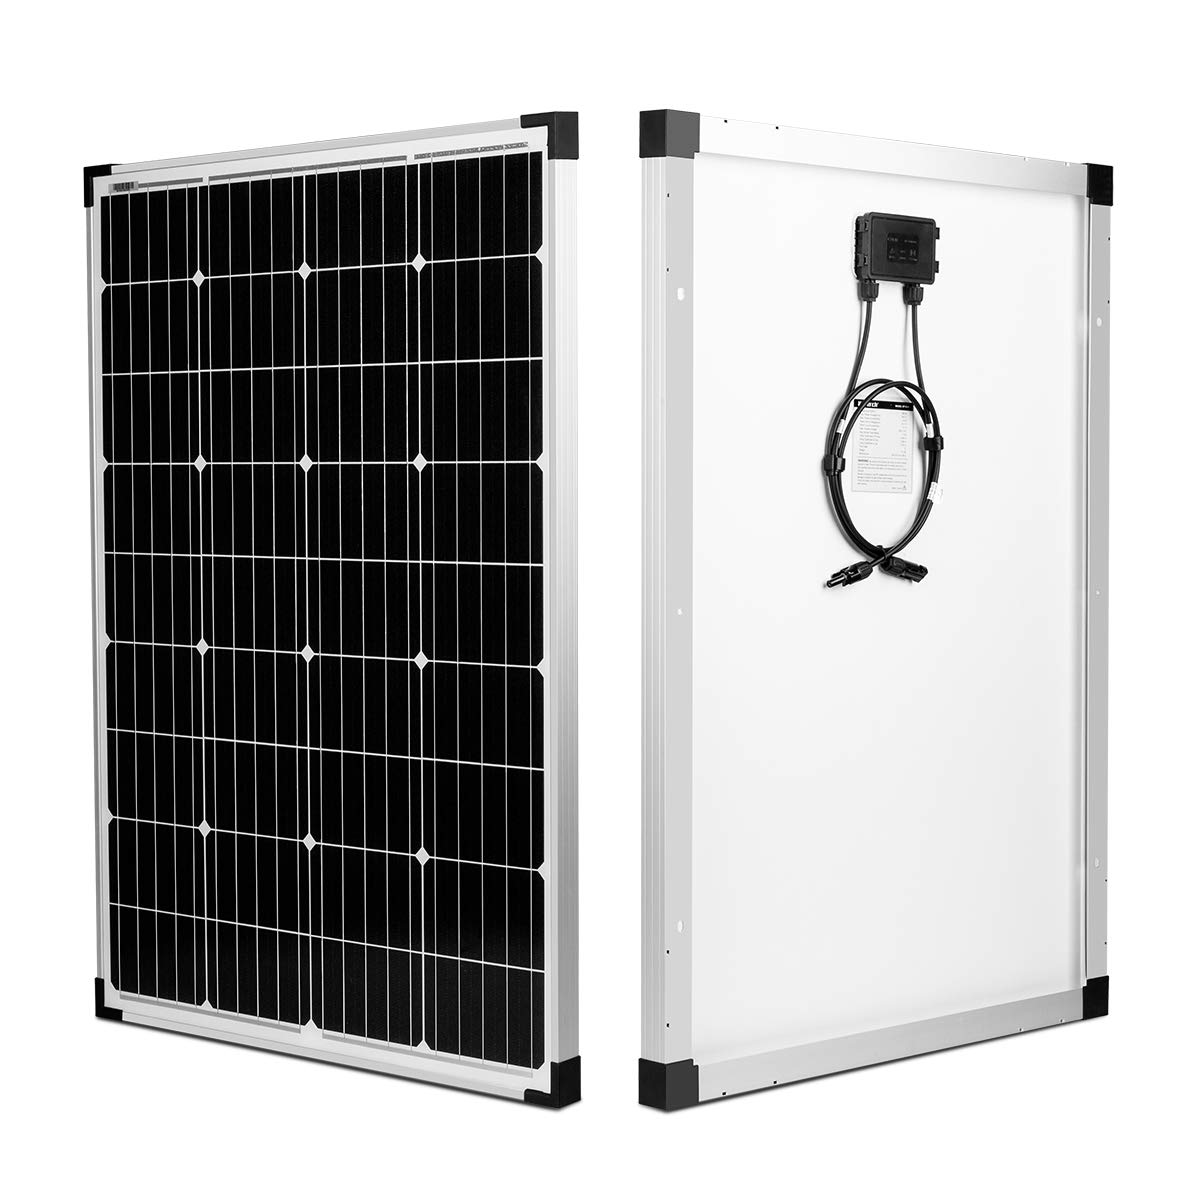 kinverch 100 Watts 12 Volts Monocrystalline Solar Panel for 12 Volt Battery Charging,RV's and Boats by kinverch (Image #7)